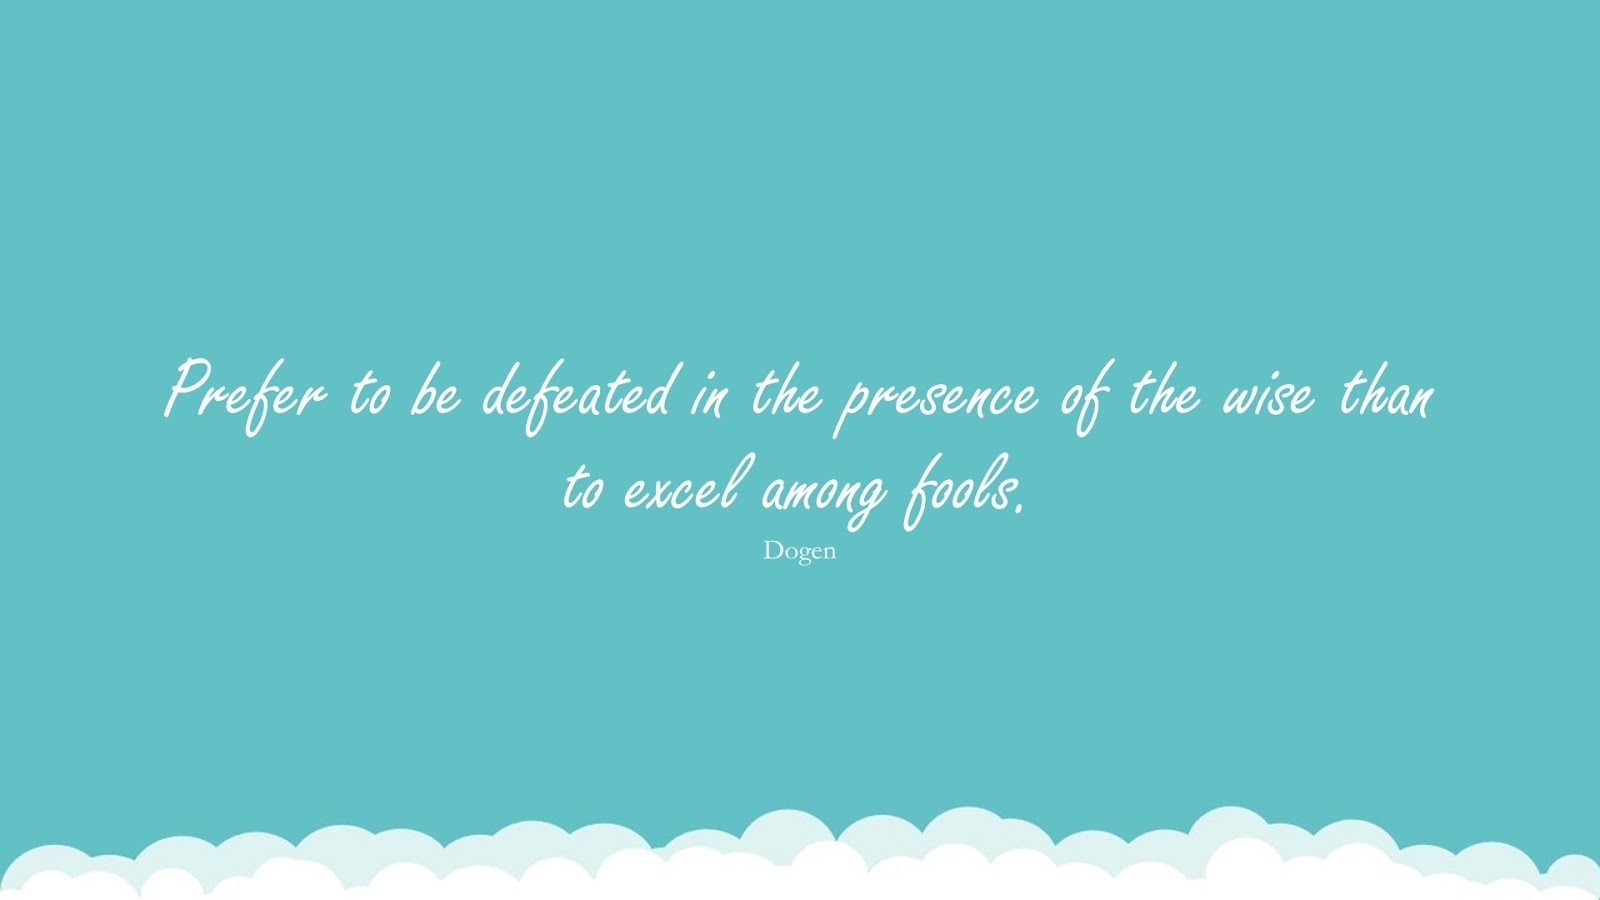 Prefer to be defeated in the presence of the wise than to excel among fools. (Dogen);  #RelationshipQuotes